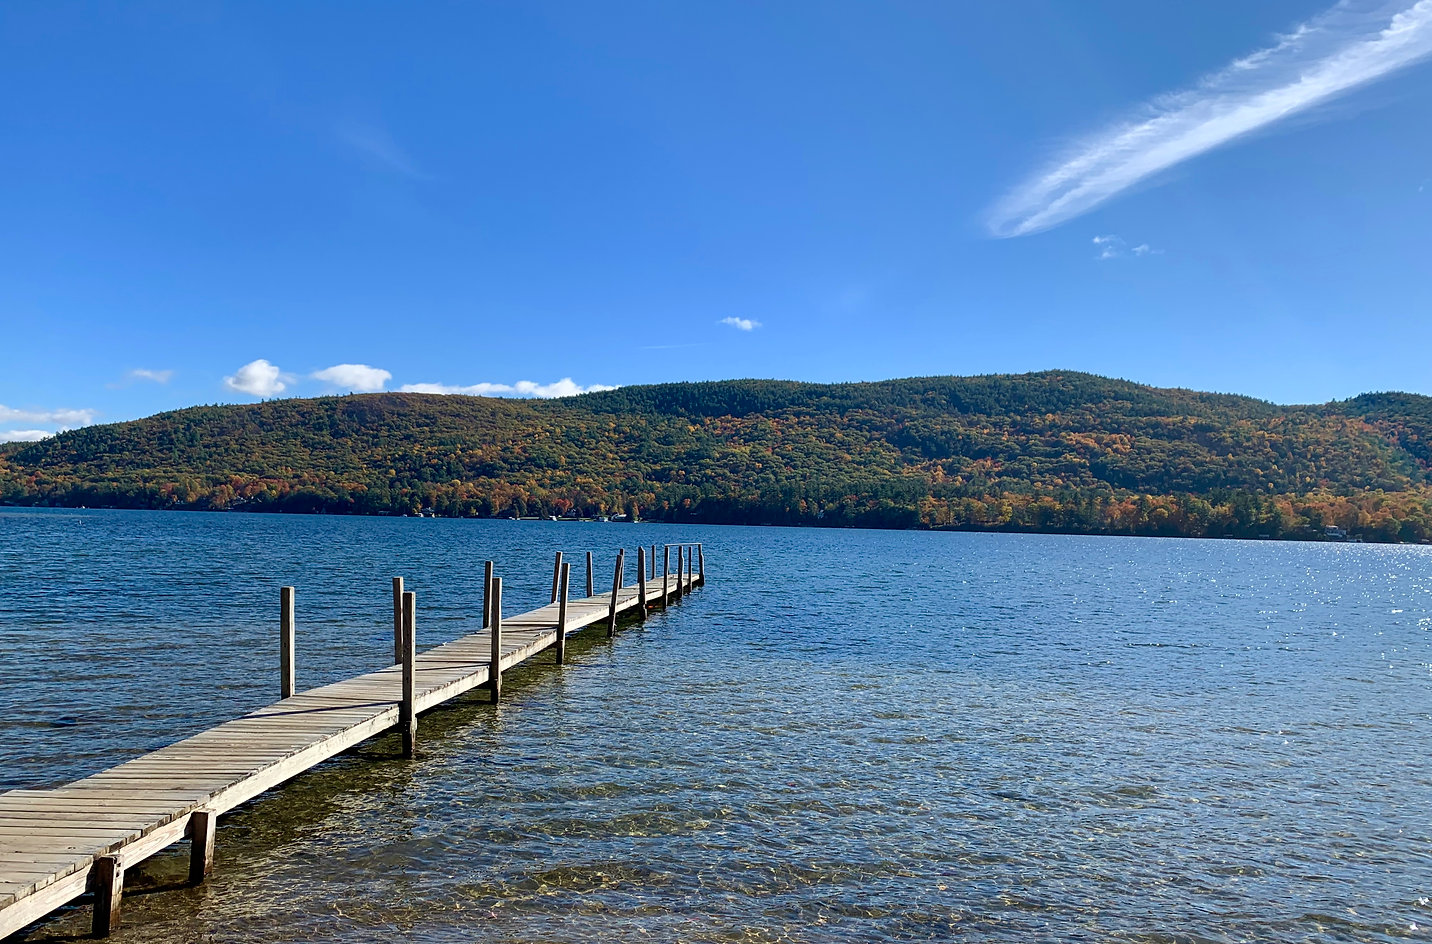 wooden dock stretching out over the waters of lake george with a deep blue sky and the adirondack mountains in the background